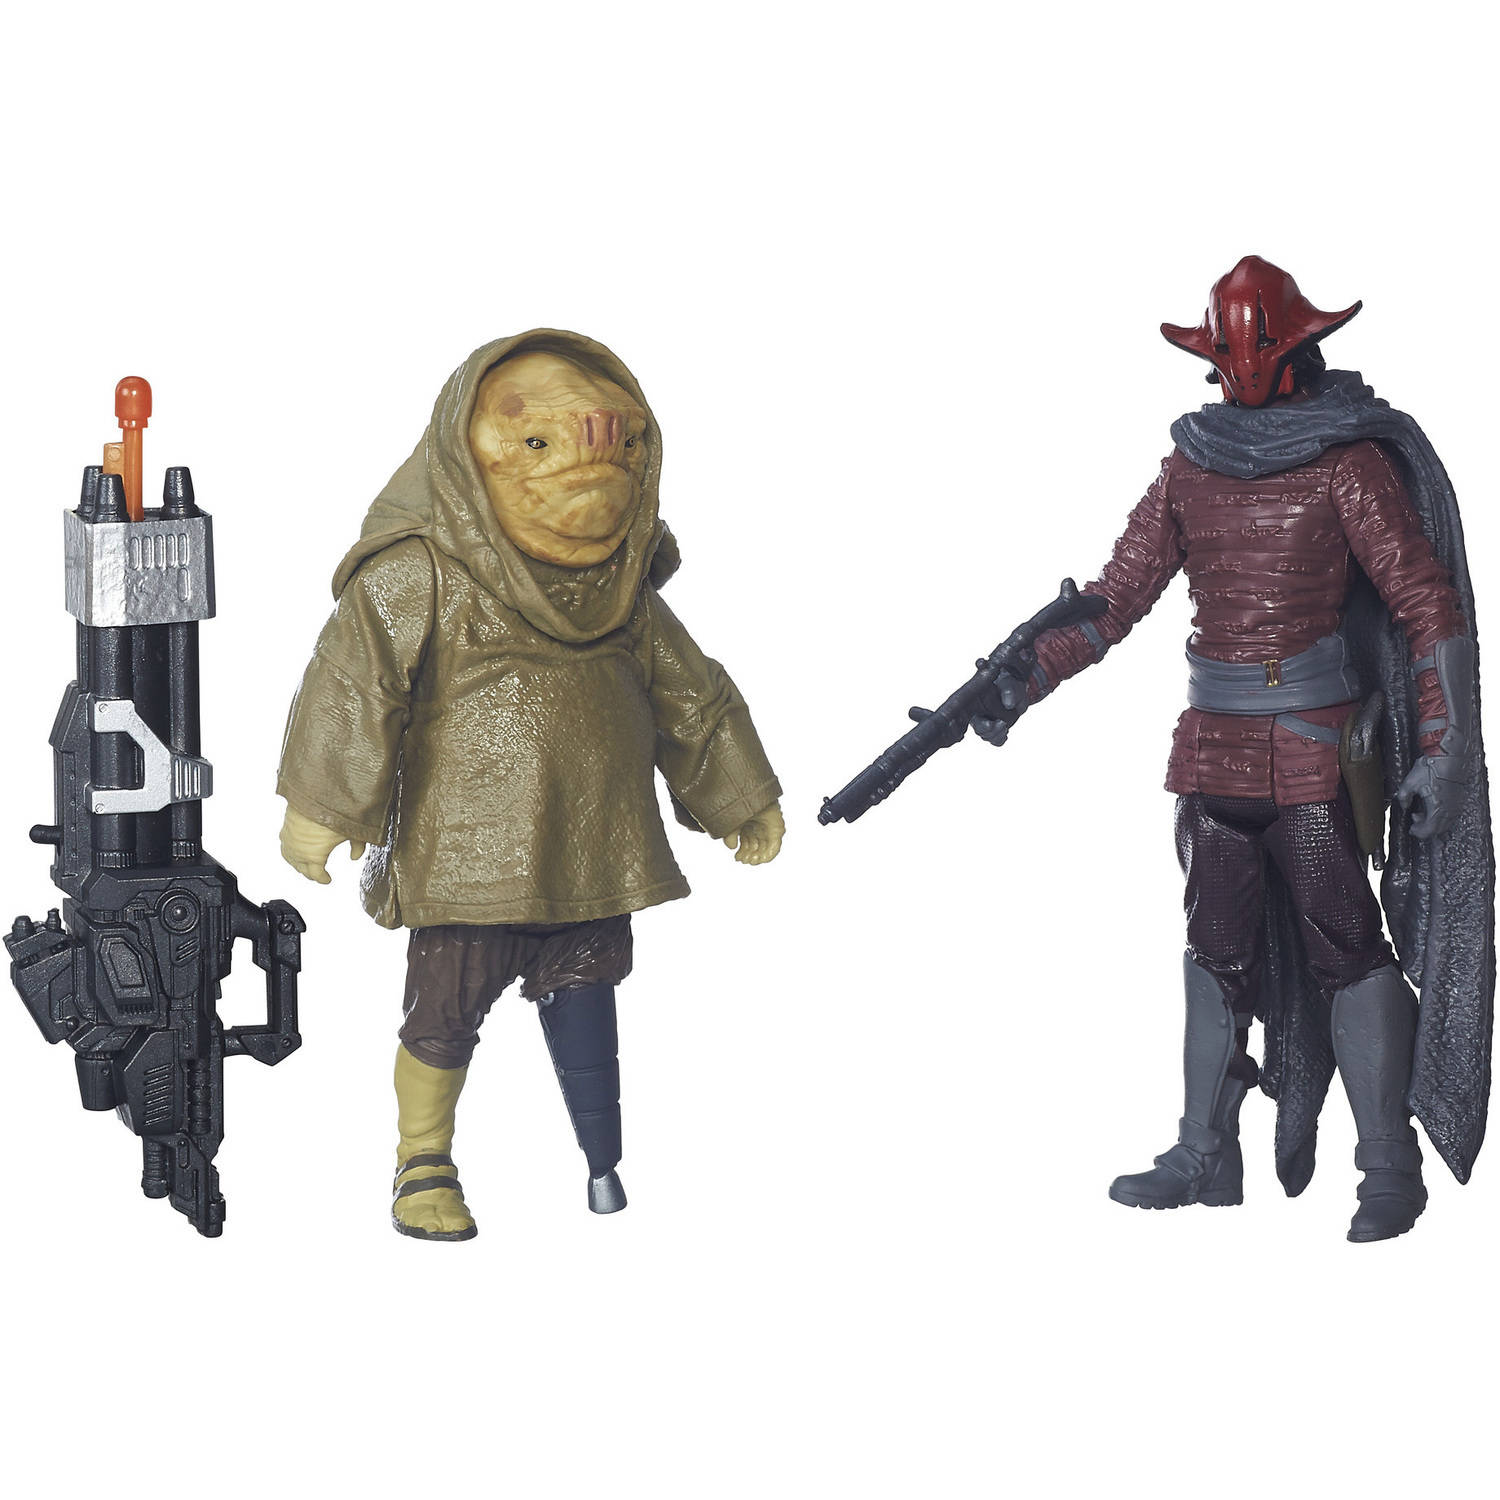 "Star Wars: The Force Awakens 3.75"" 2-Pack Sidon Ithano and First Mate Quiggold"